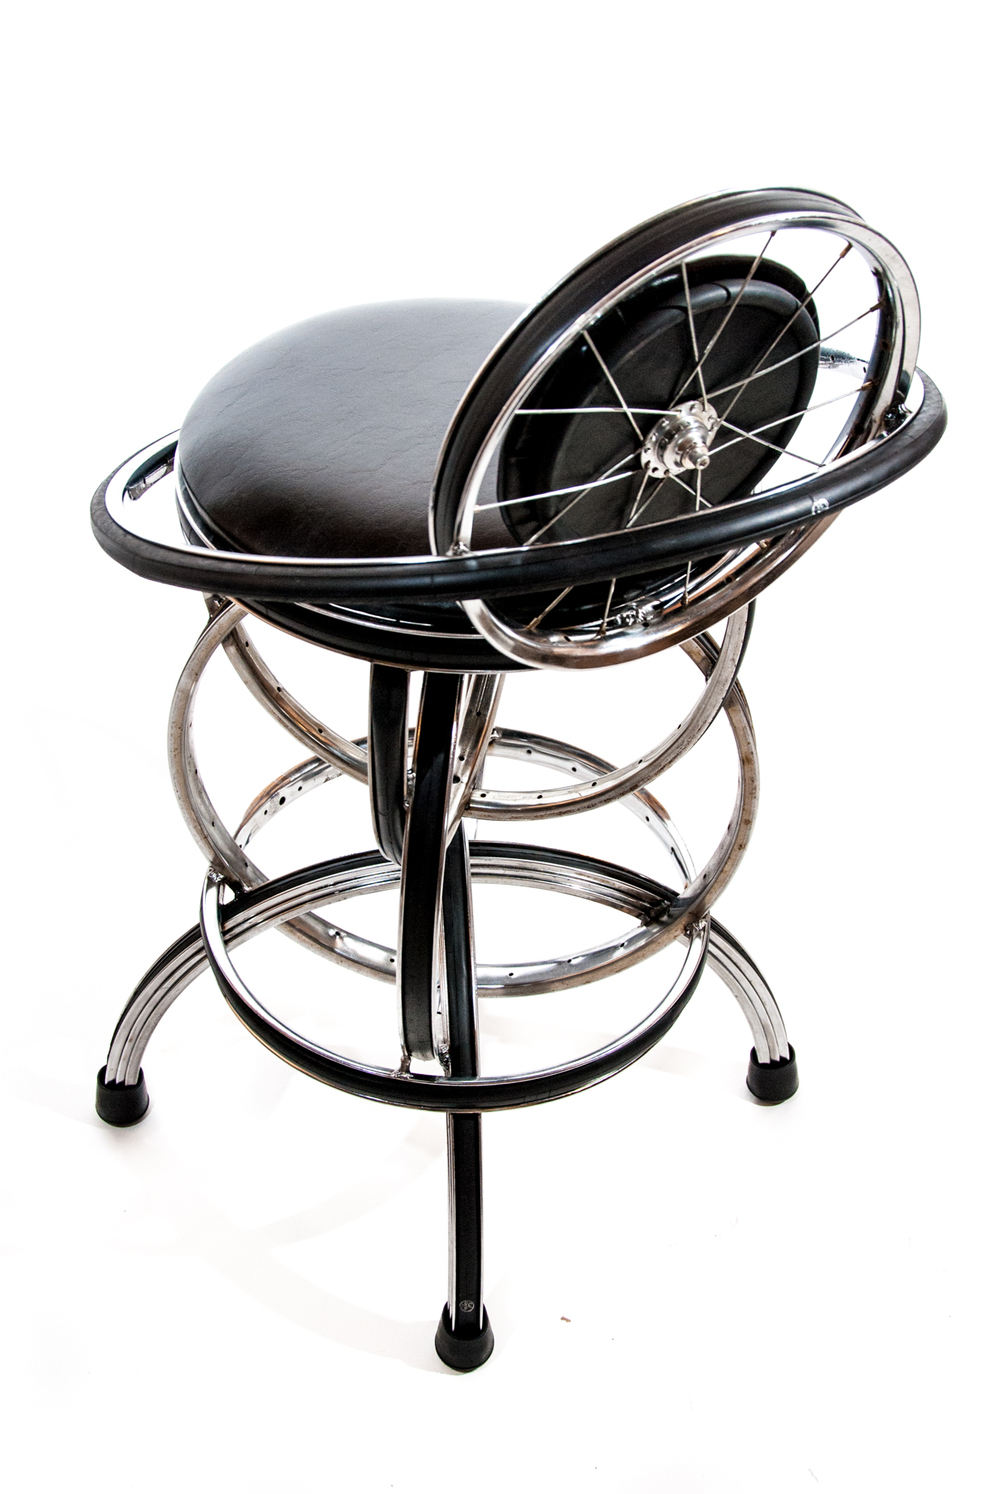 S-2 Barstool with back. Non-swivel